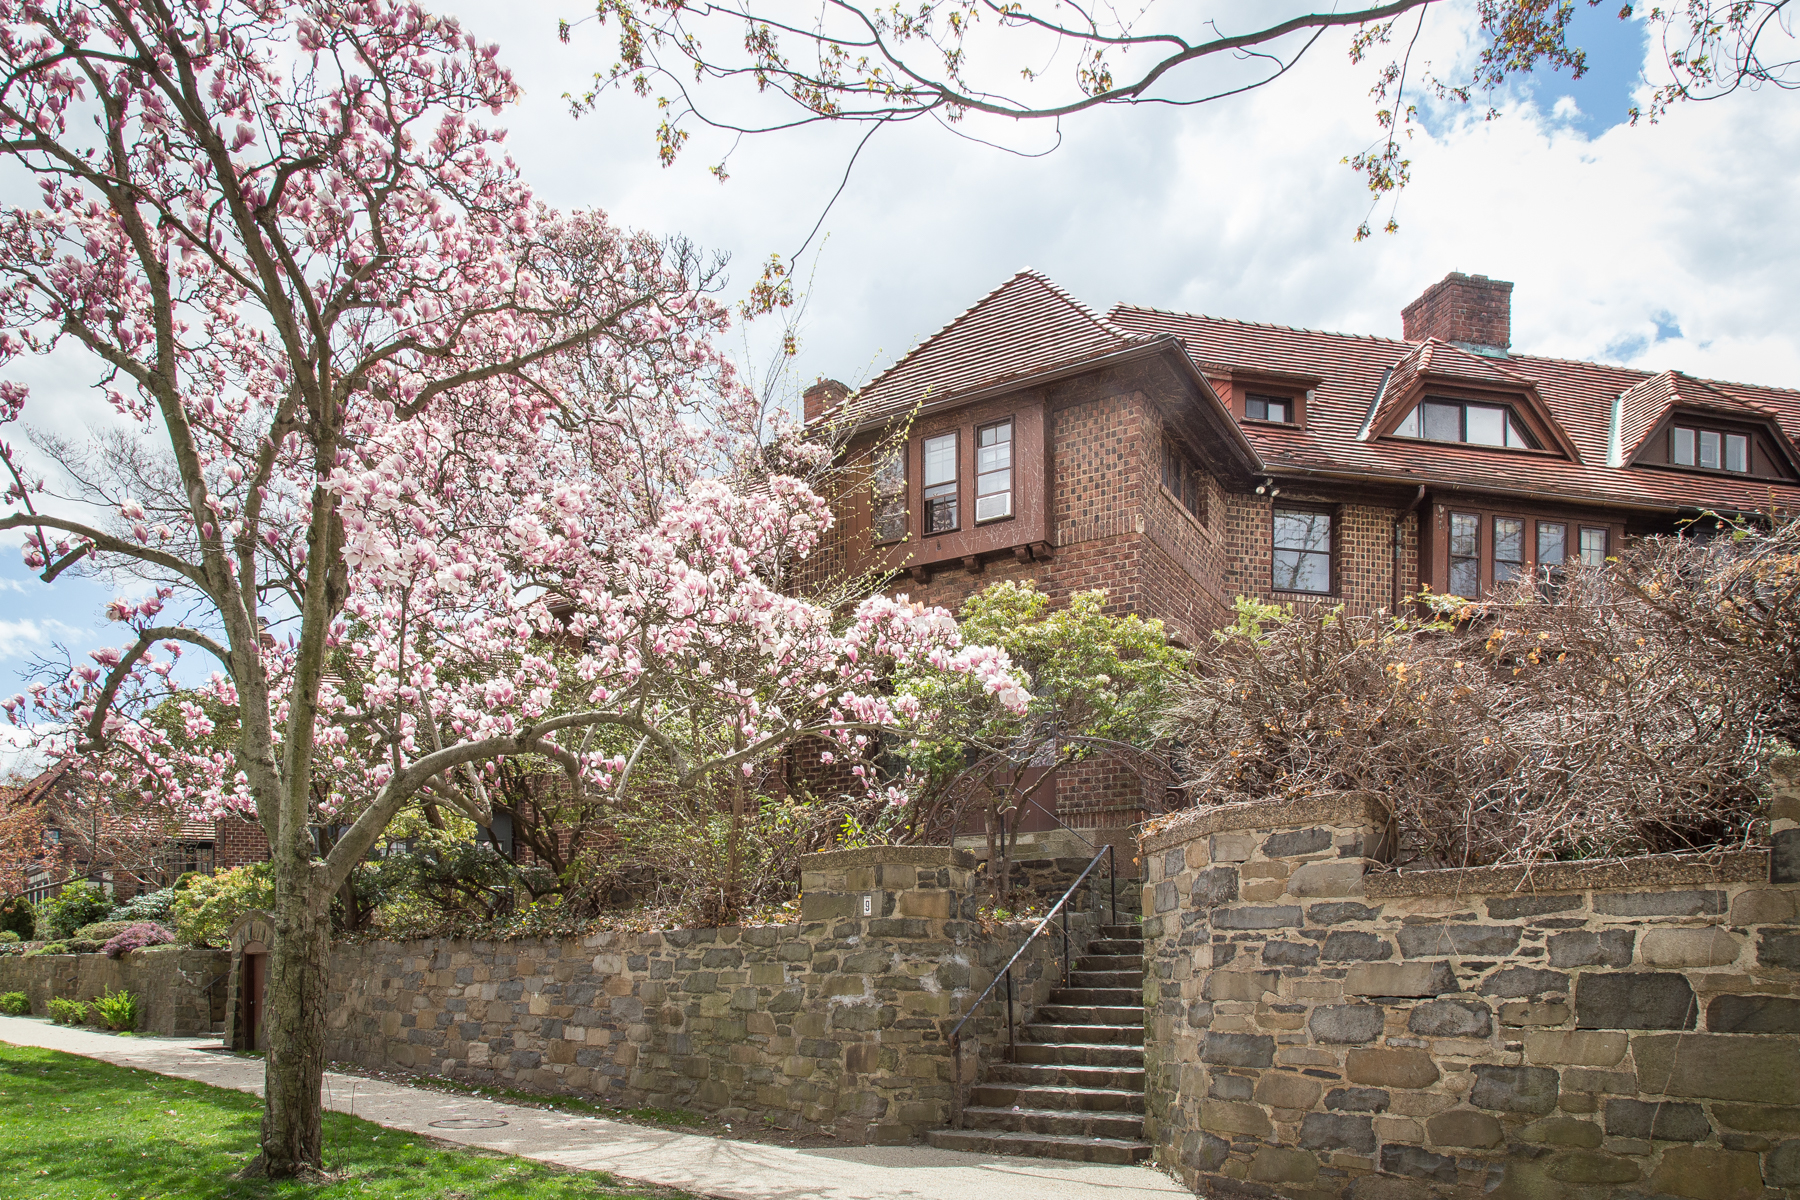 """Single Family Homes for Sale at """"STRIKING ORIGINAL ATTERBURY"""" 9 Markwood Road,, Forest Hills Gardens, Forest Hills, New York 11375 United States"""